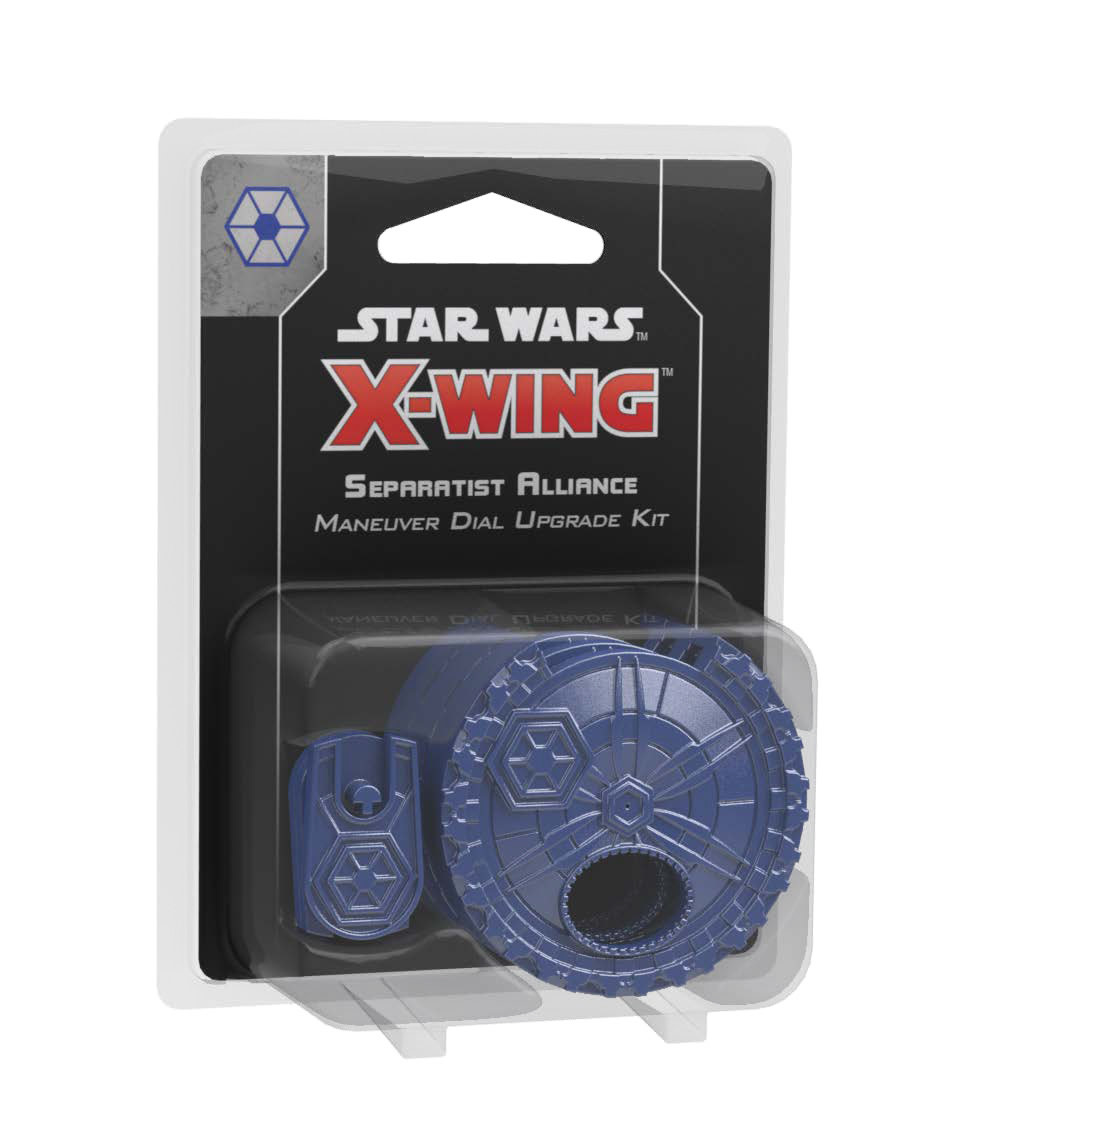 X-Wing Separatist Alliance Dial Upgrade